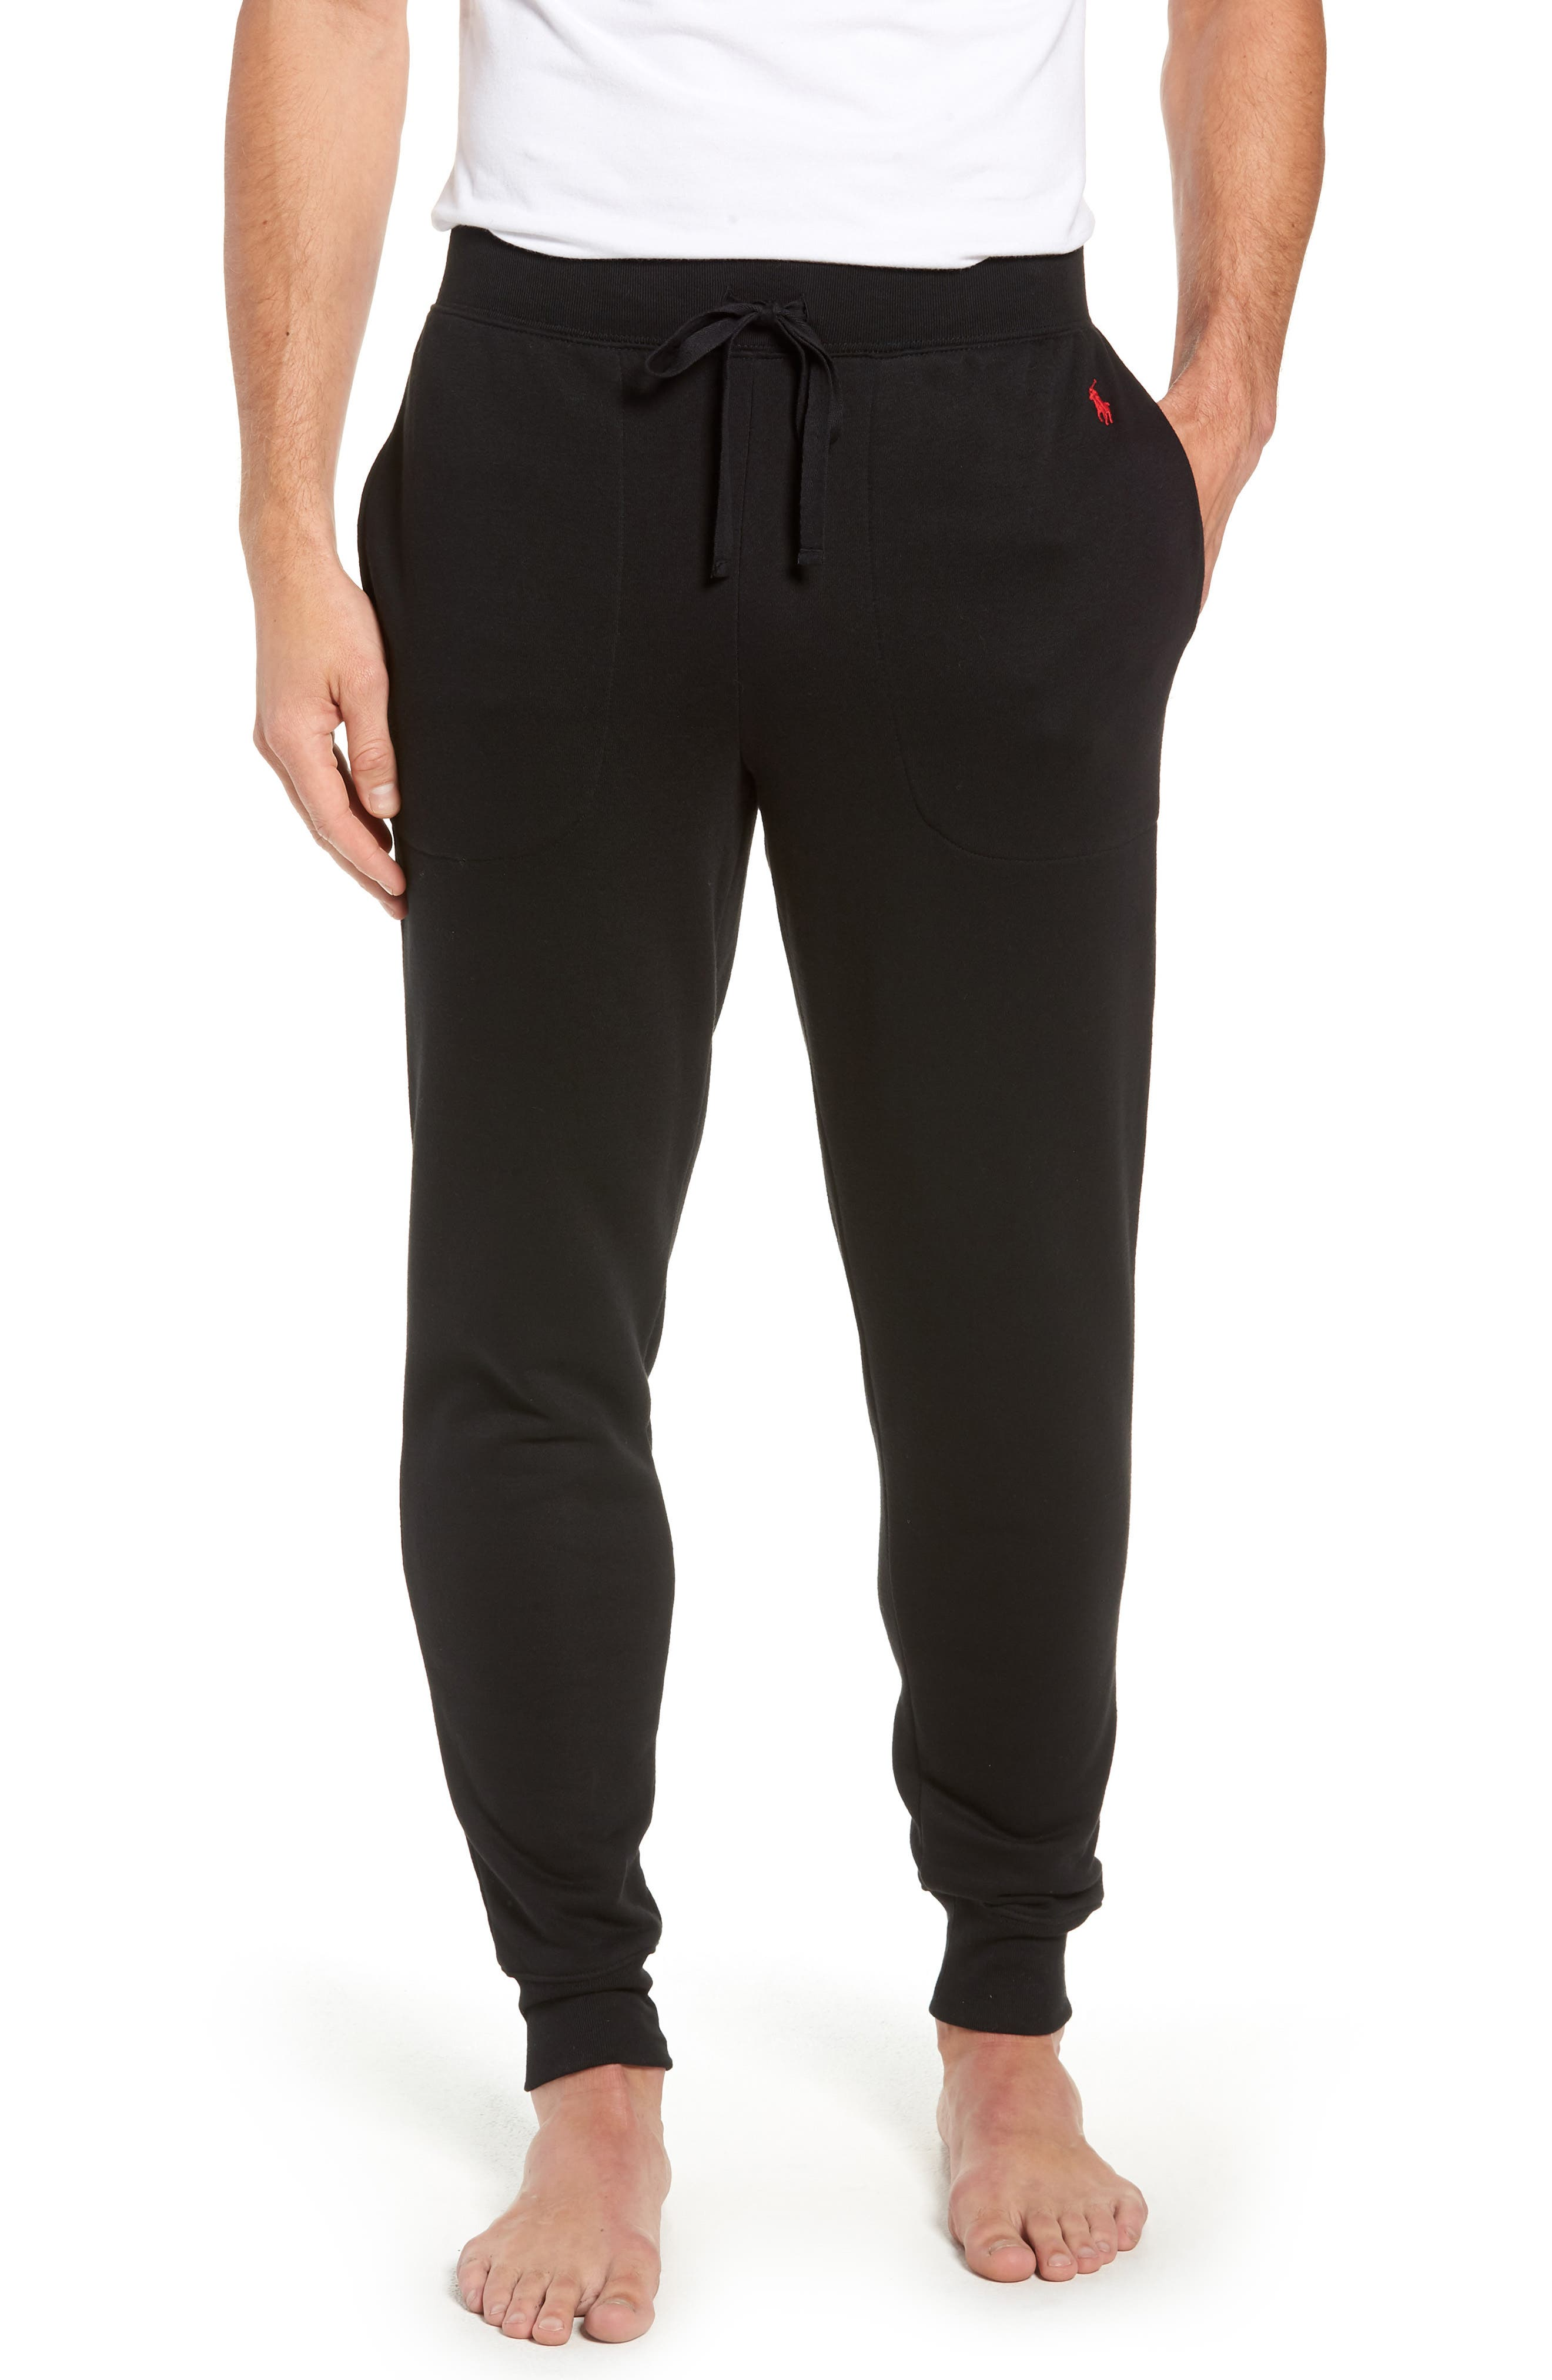 POLO RALPH LAUREN, Brushed Jersey Cotton Blend Jogger Pants, Main thumbnail 1, color, POLO BLACK